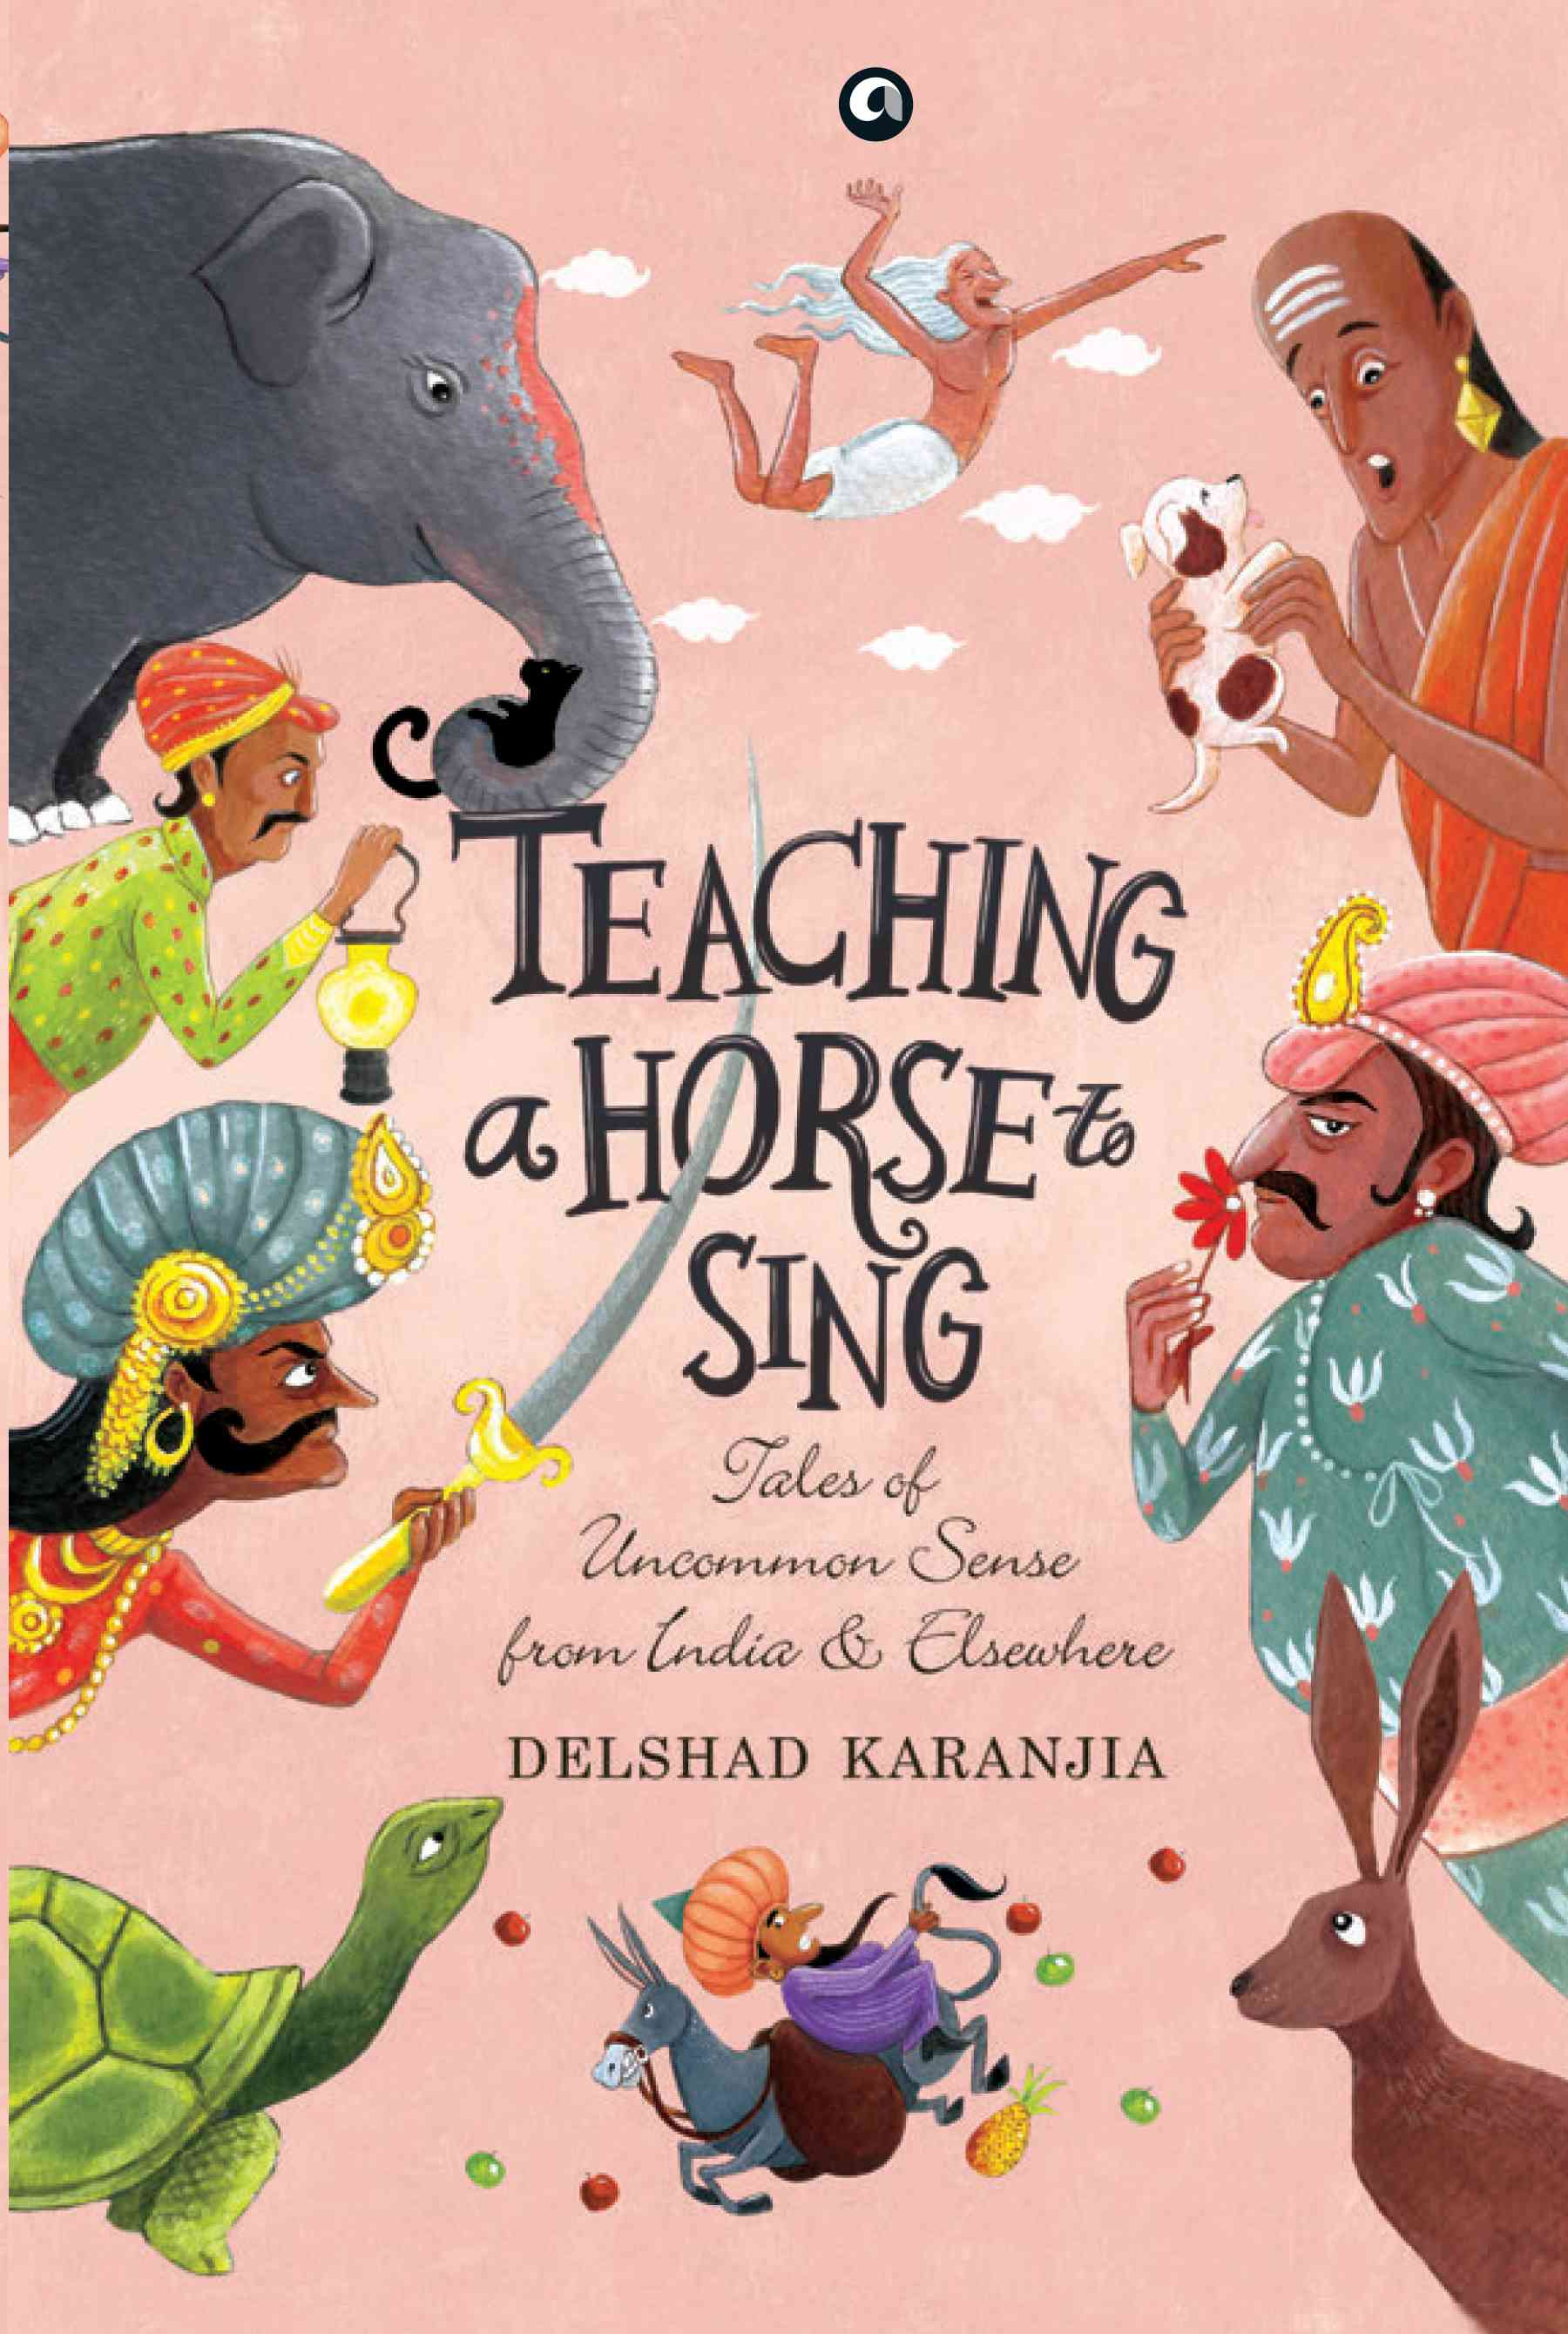 Teaching a Horse to Sing